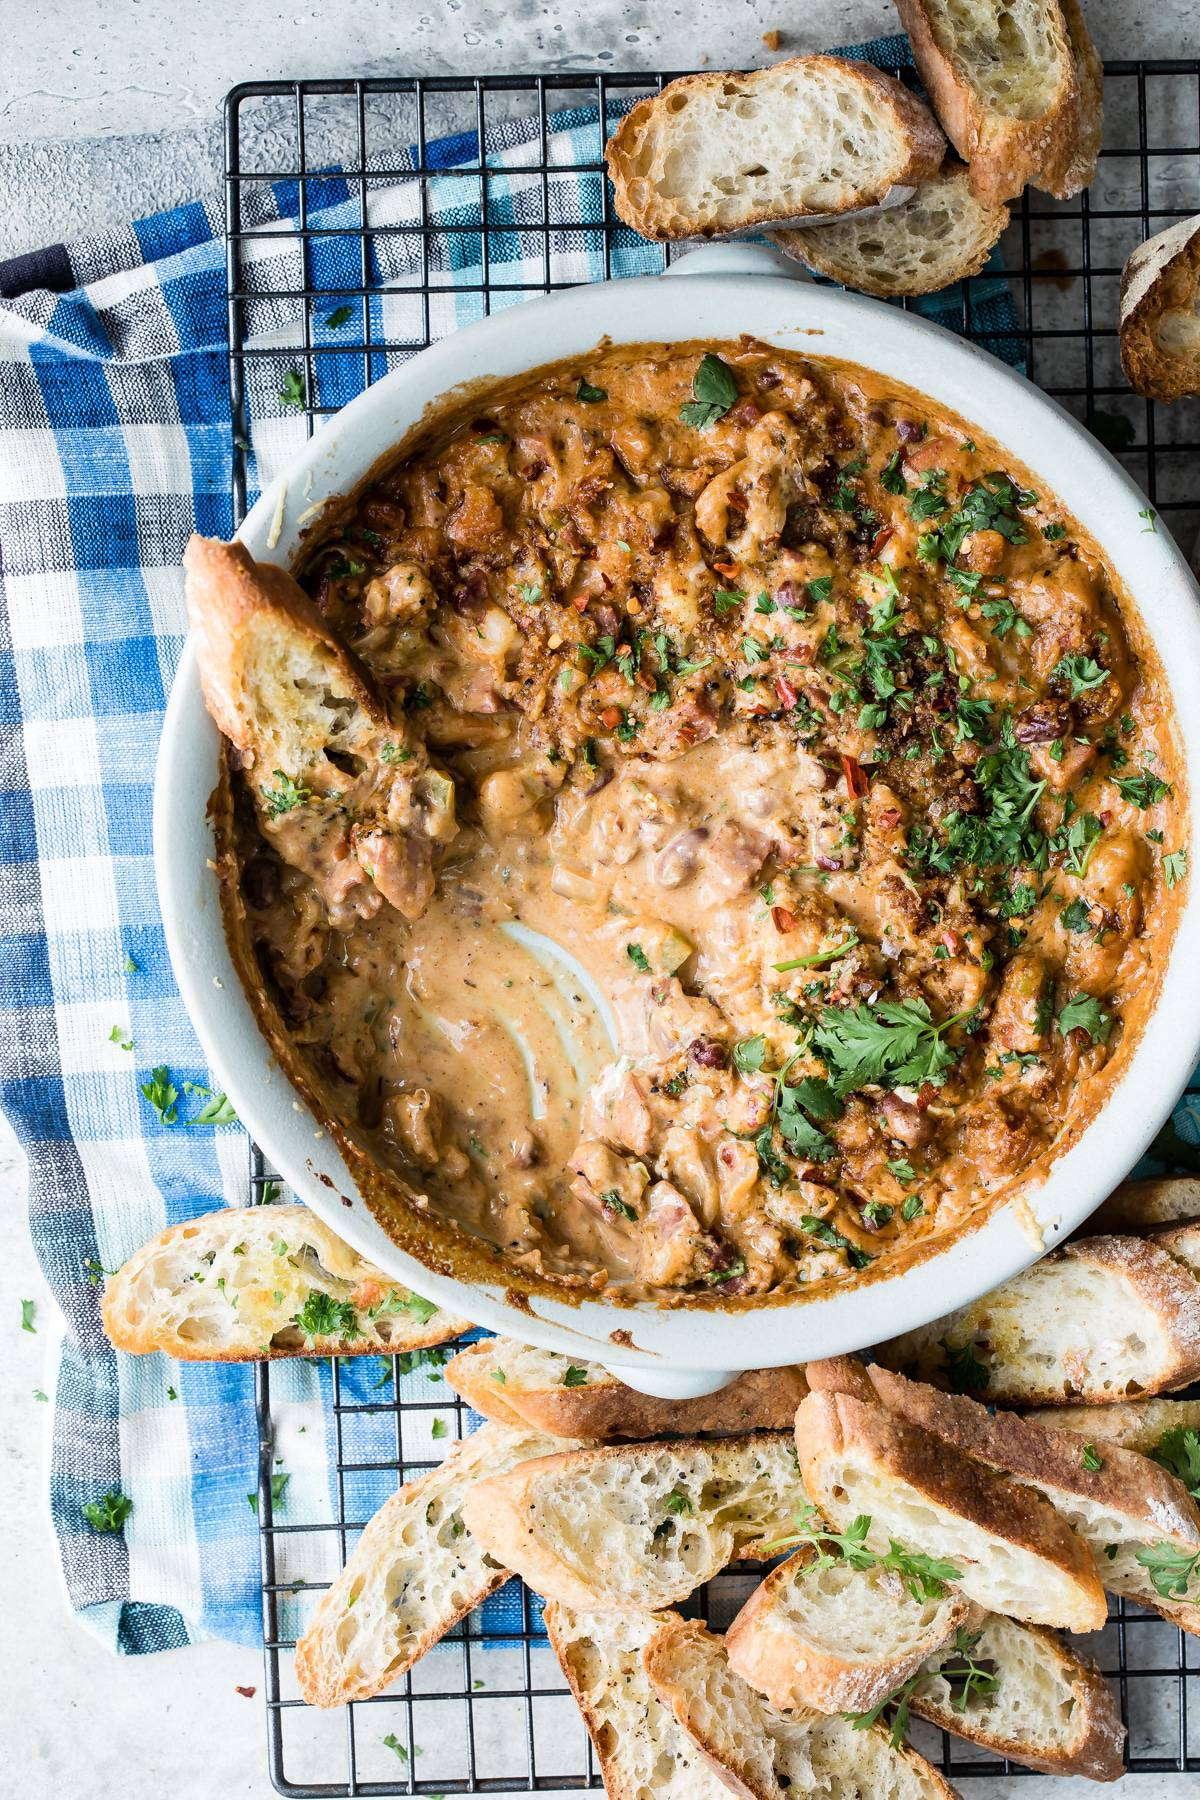 Gumbo dip with bread sticks for dipping